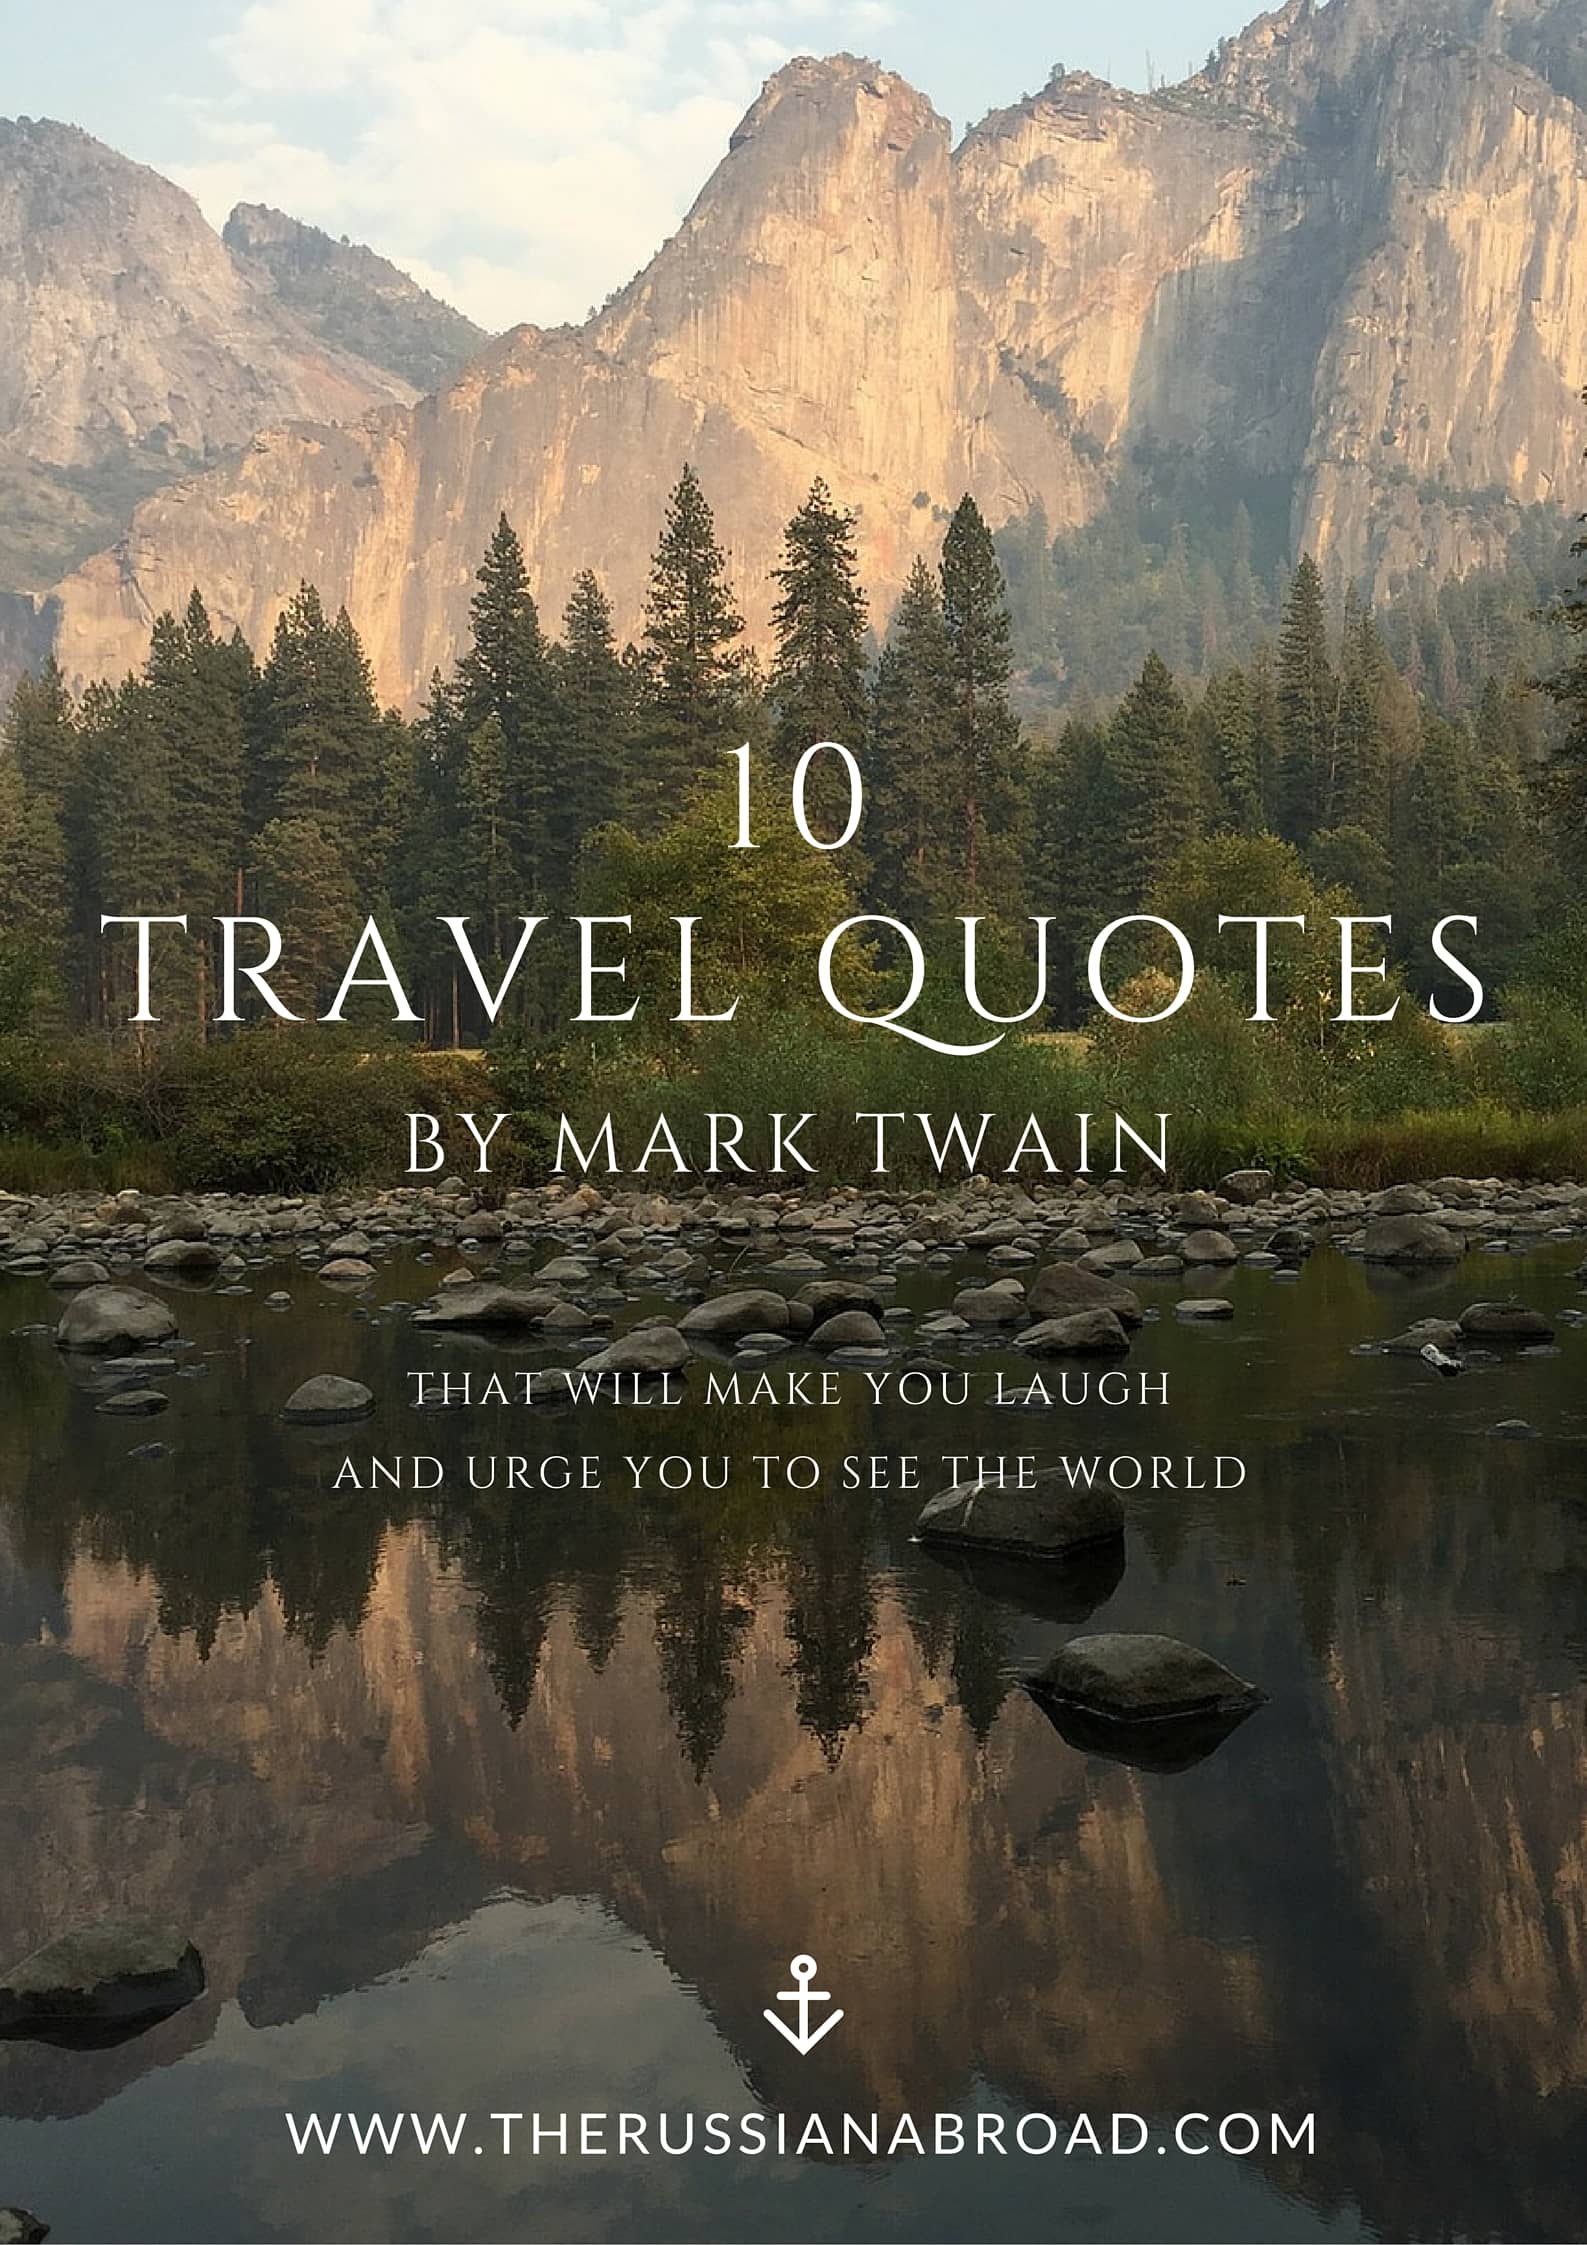 10 witty travel quotes by Mark Twain